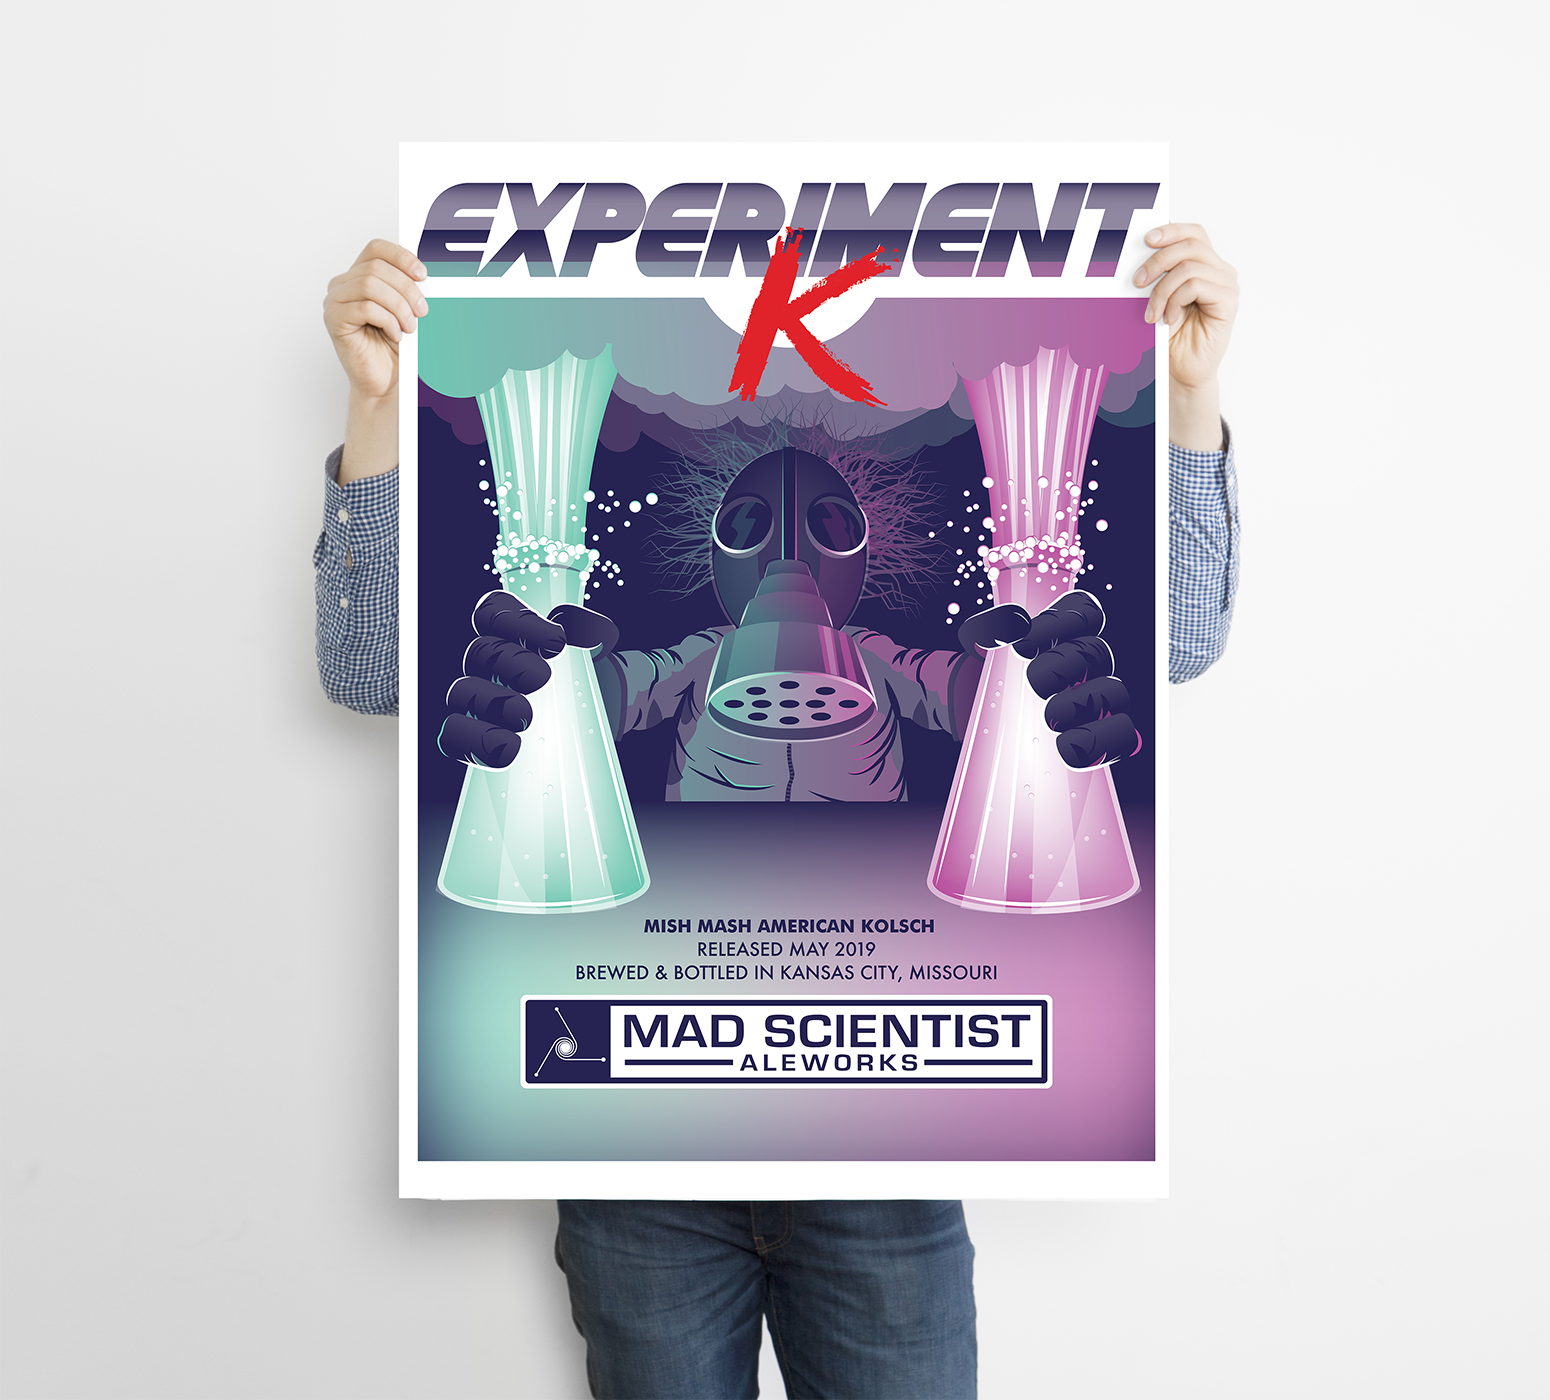 beer--brewery-branding-poster-experiment-kyle-dolan-design-illustration-mock-02.png